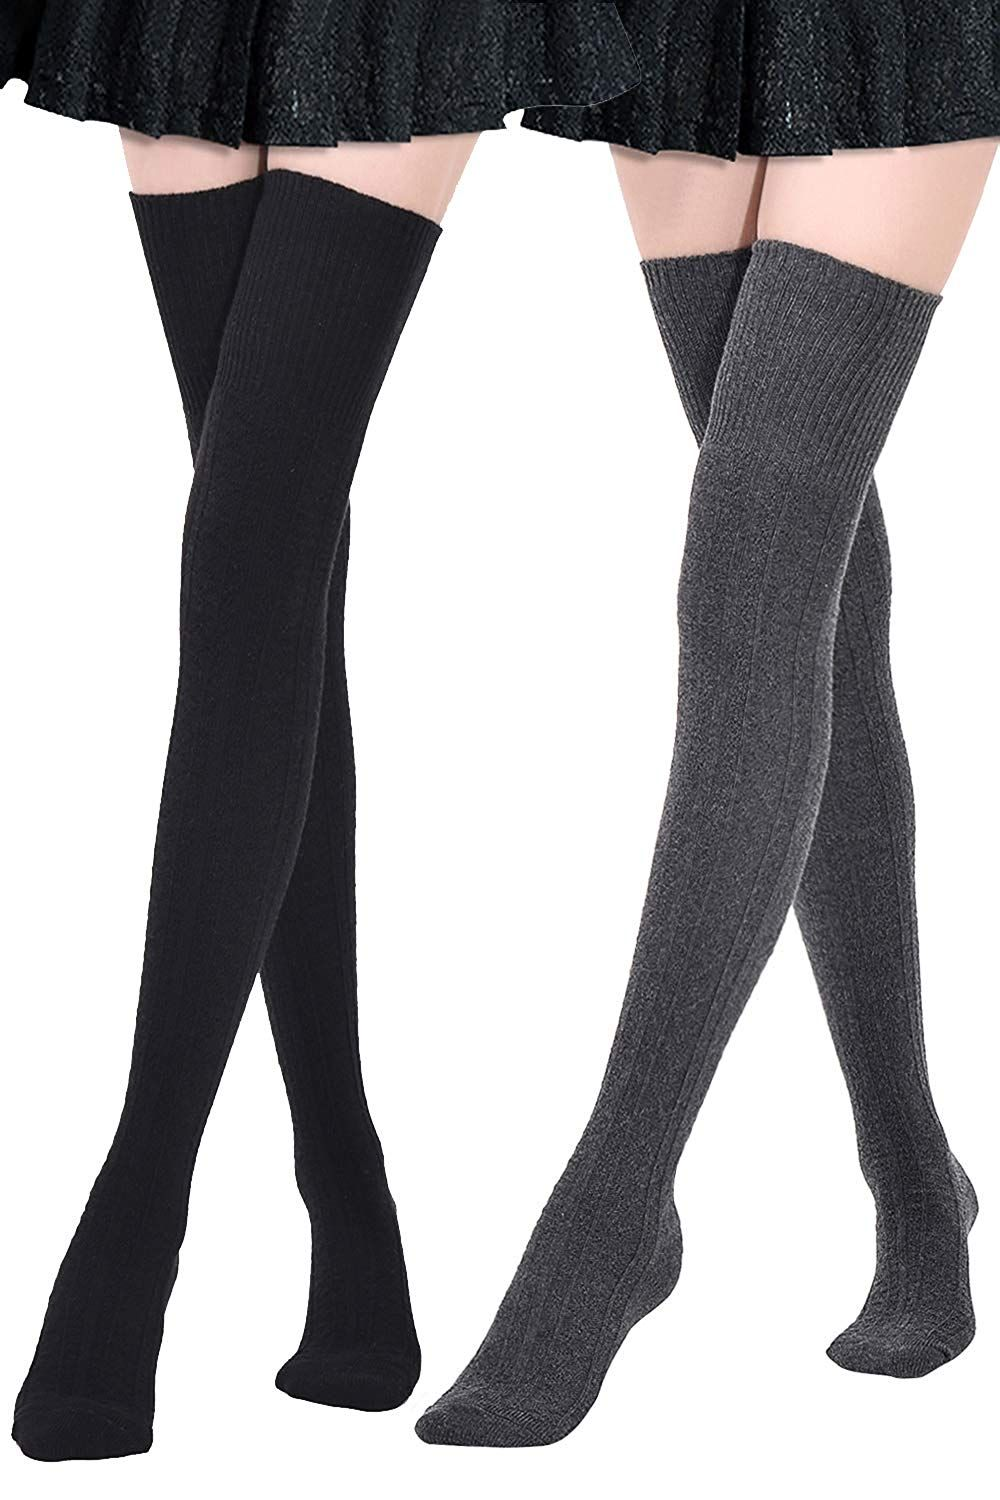 fb5341938e1 Kayhoma Extra Long Cotton Thigh High Socks Over the Knee High Boot Stockings  Cotton Leg Warmers